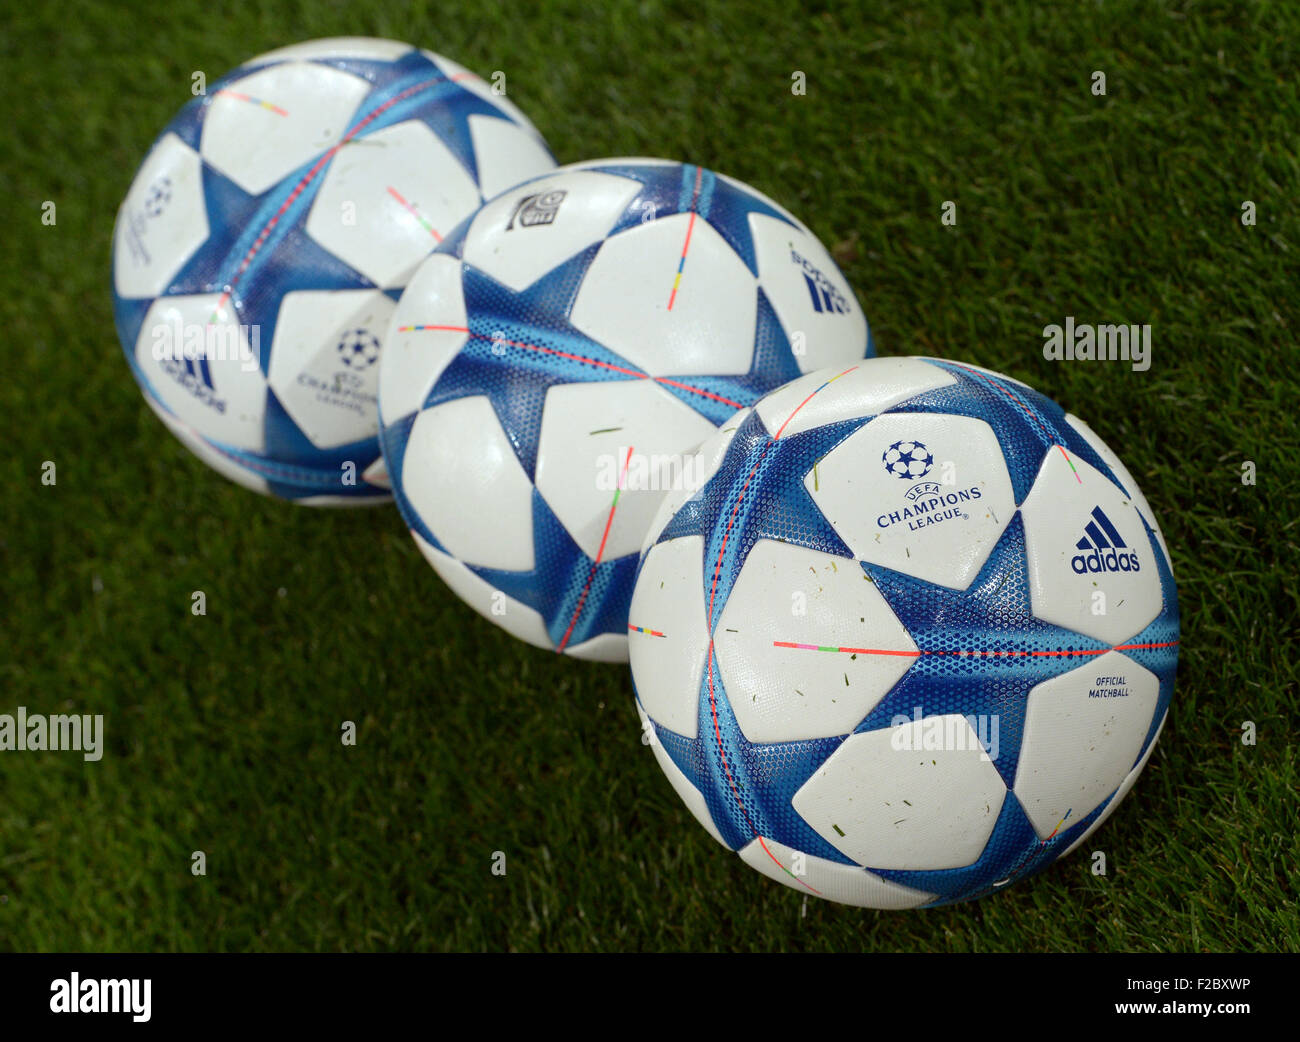 Download Uefa Champions League Ball 2015